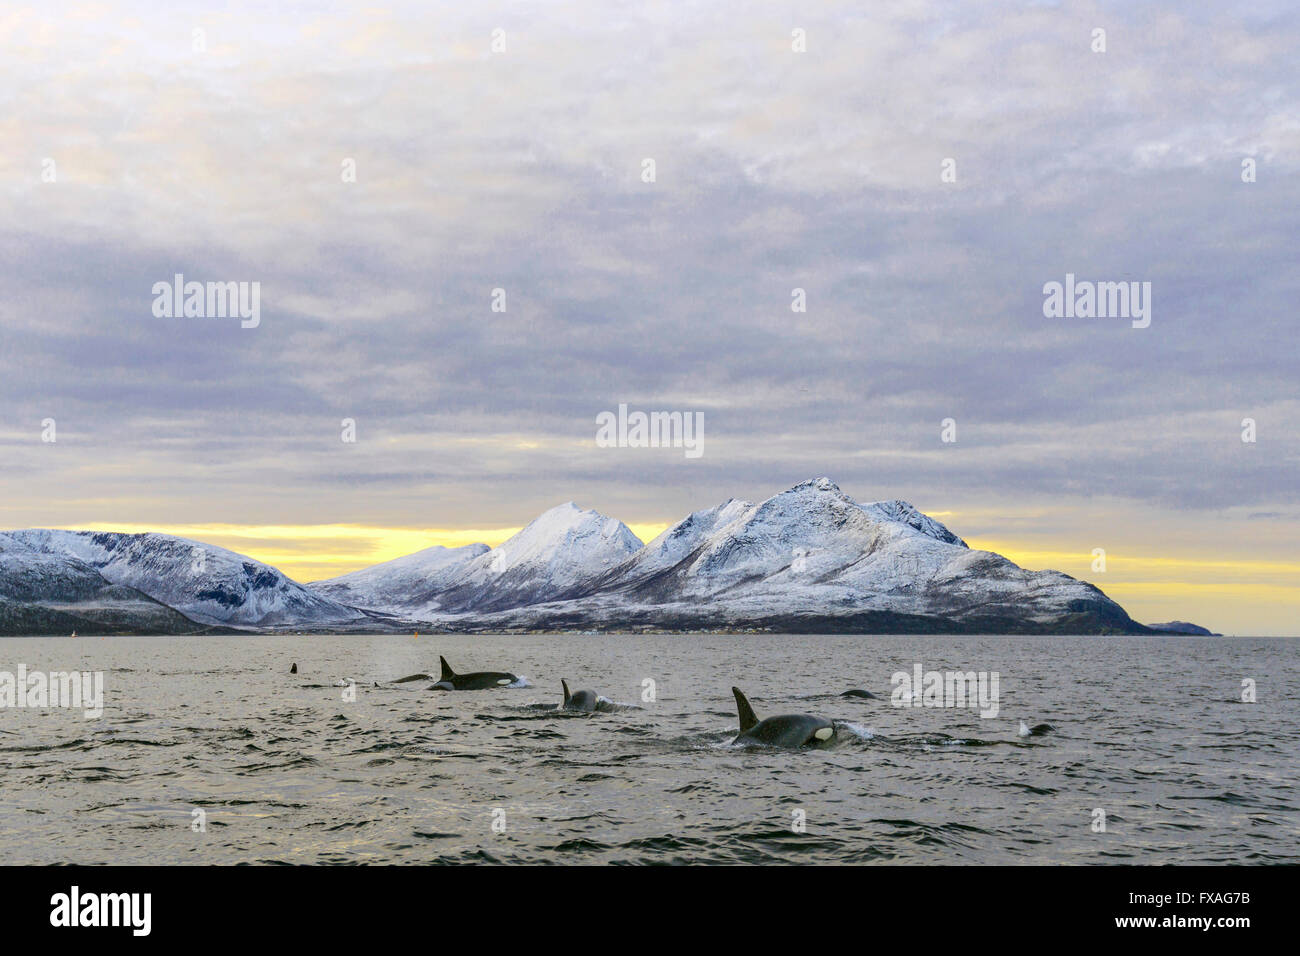 Several Orcas (Orcinus orca) in front of snowy mountains, group, North Atlantic, at Tromvik, Norway - Stock Image